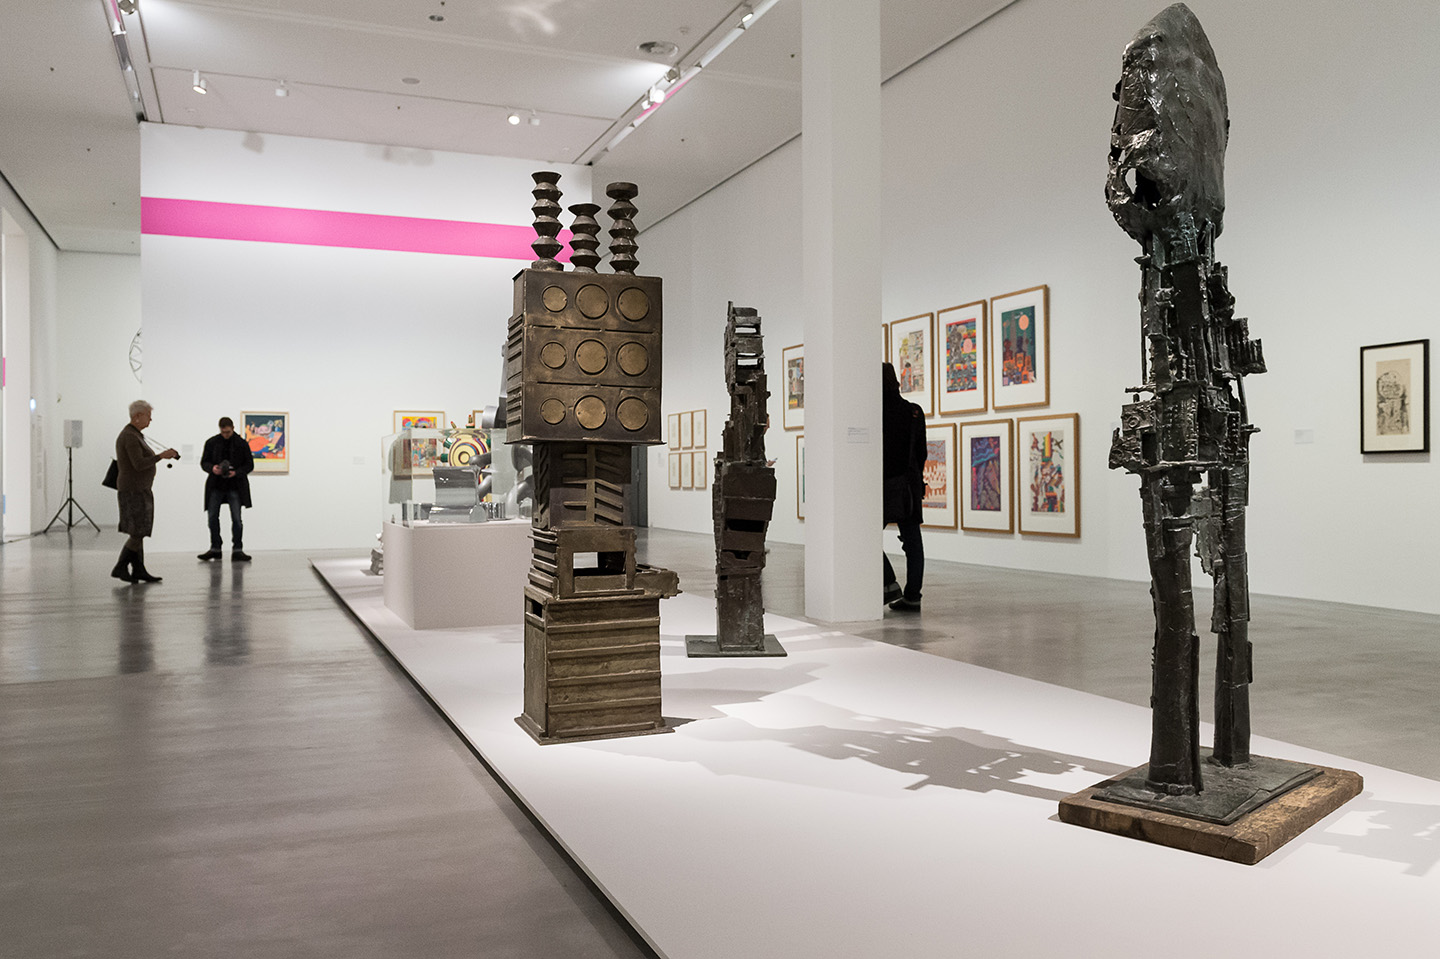 Eduardo Paolozzi Lots Of Pictures Lots Of Fun At Berlinische